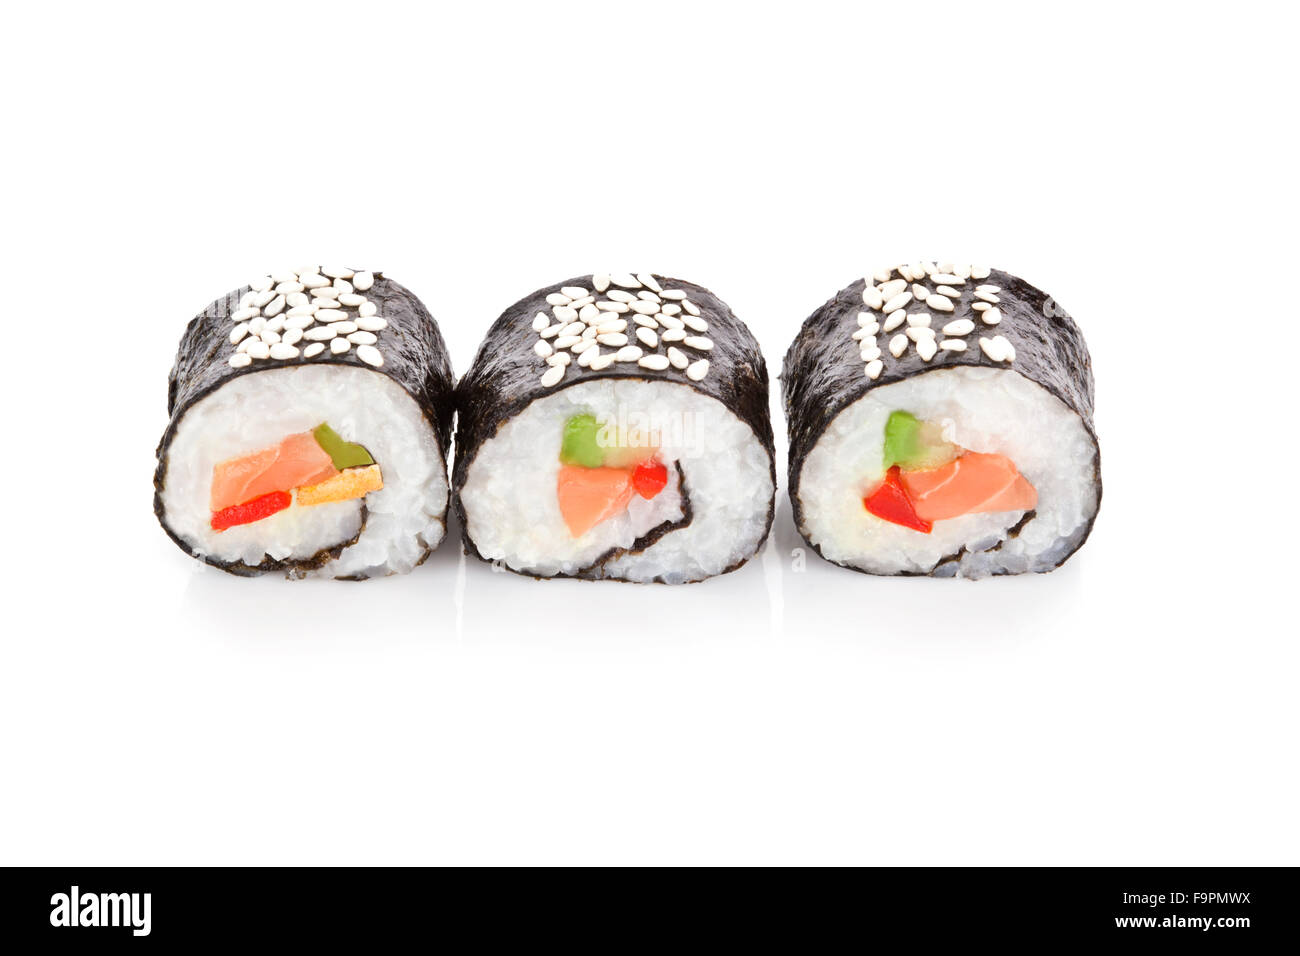 sushi rollen stockfoto bild 92083094 alamy. Black Bedroom Furniture Sets. Home Design Ideas